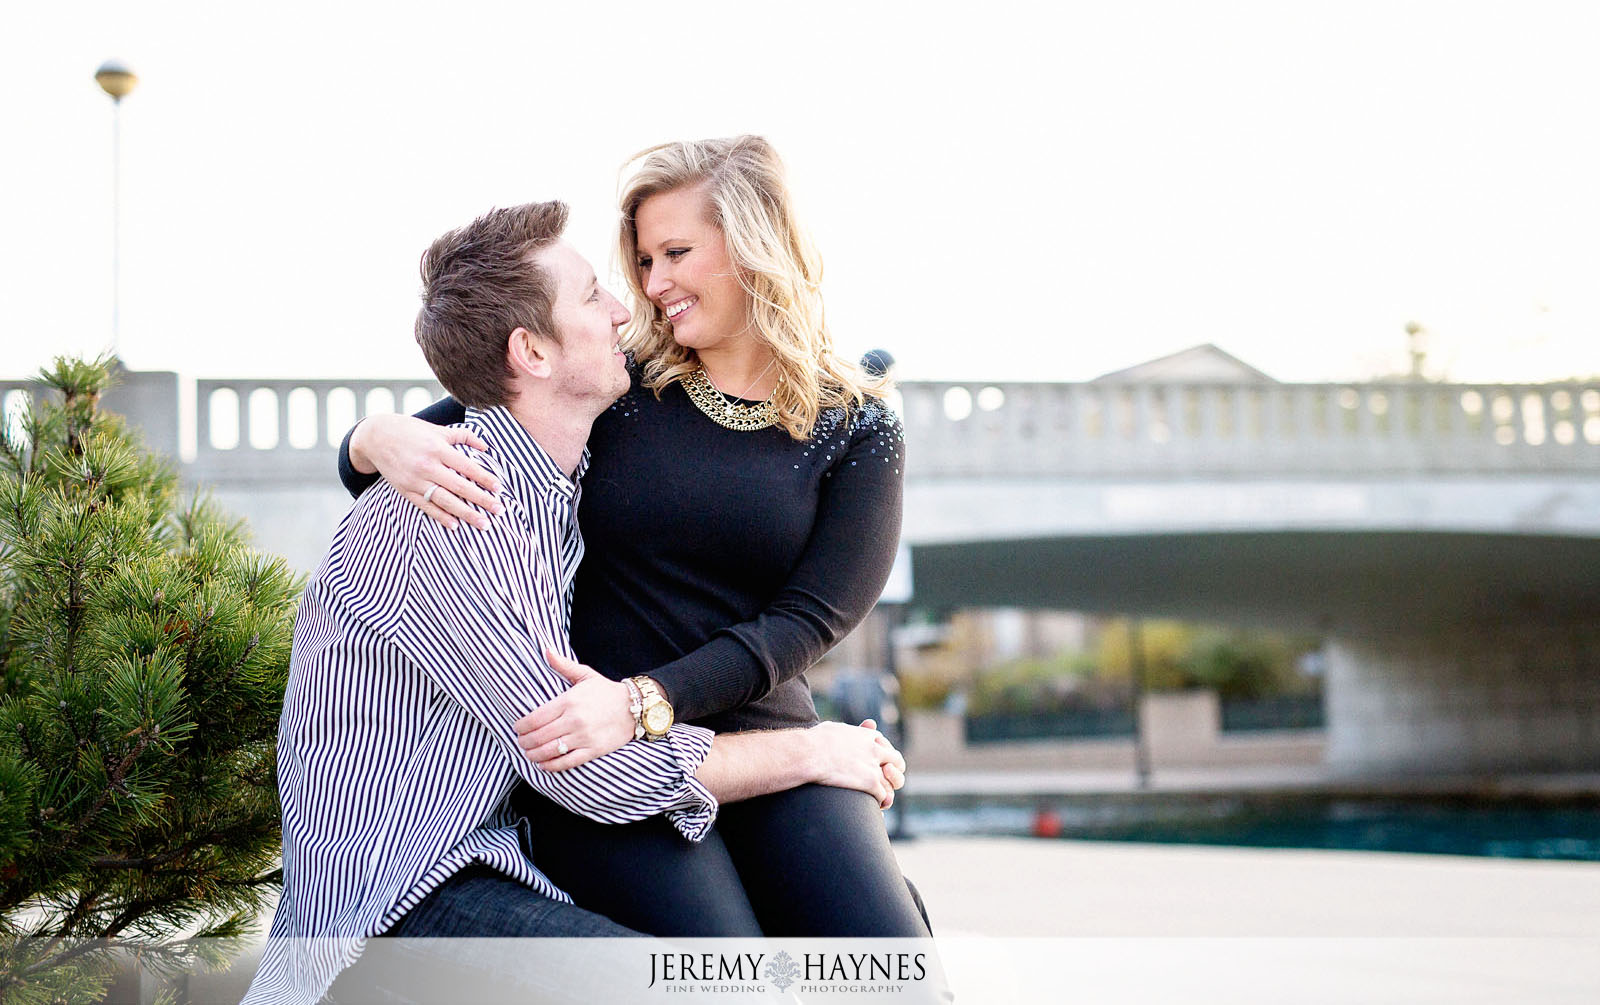 07-romantic-downtown-indiana-central-canal-indianapolis-engagement-photo-ideas.jpg